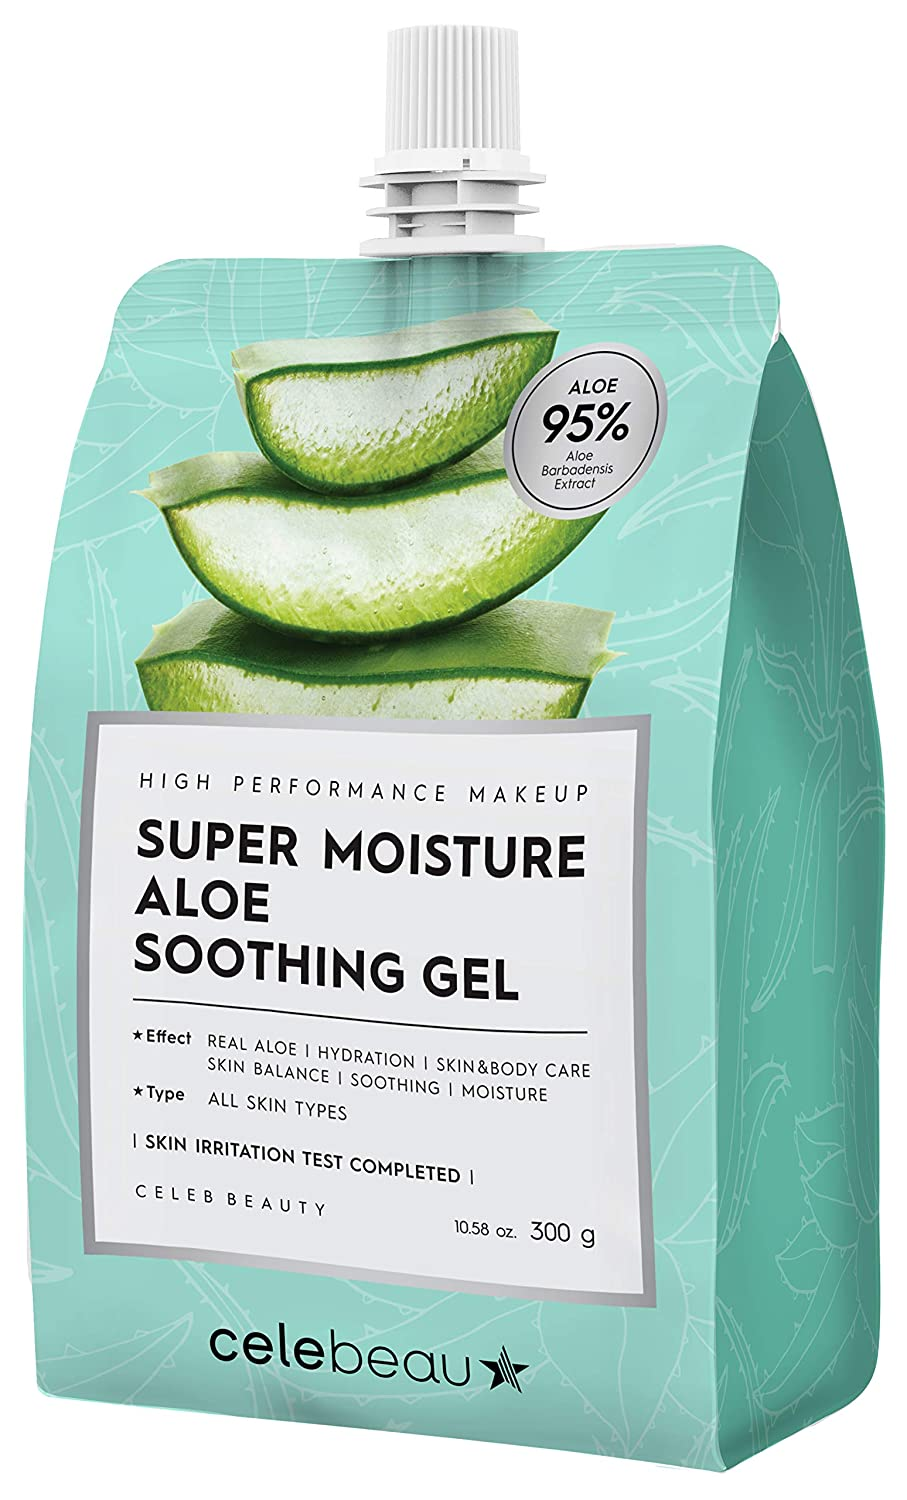 CELEBEAU - Super Moisture Aloe Soothing Gel - 95% Aloe Extract - Maximum Soothing & Hydration for All Sensitive Skin Types - Excellent After Sun Care Relief - 300g : Beauty